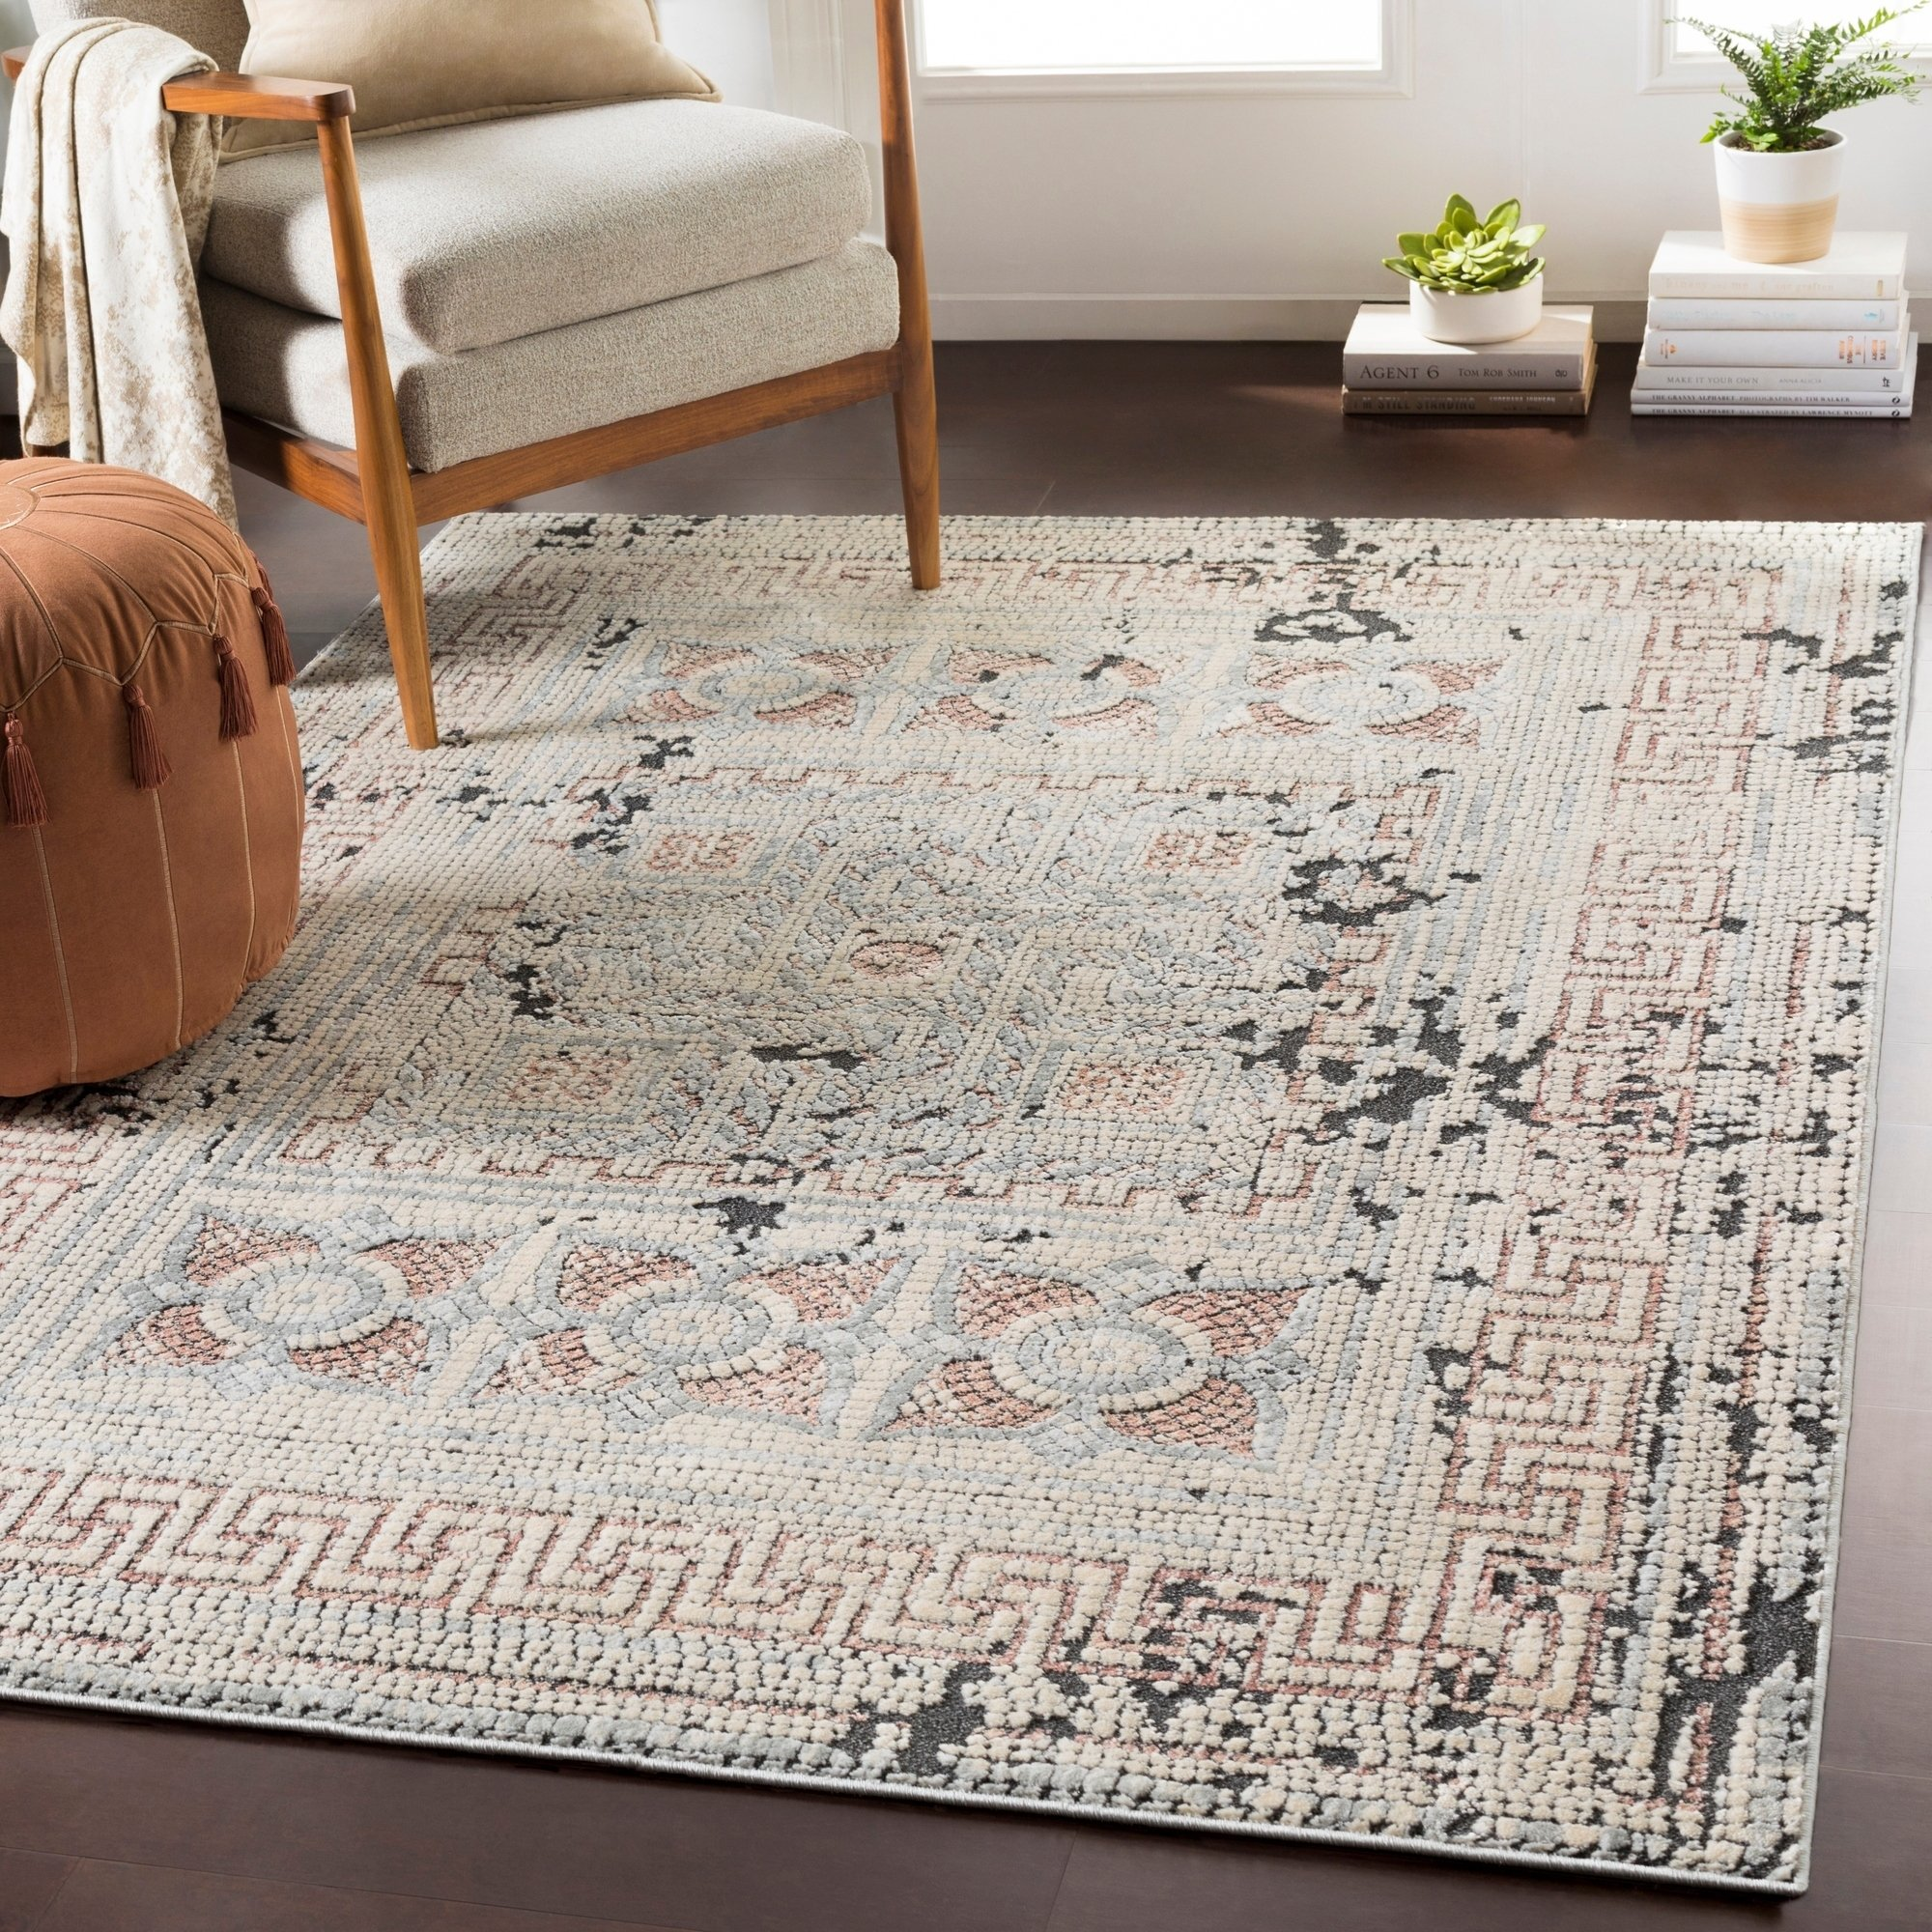 Padua Blush Gray Distressed Mosaic Area Rug 7 10 X 10 3 Brown Black 7 10 X 10 3 Beige Area Rugs Rugs Colorful Rugs